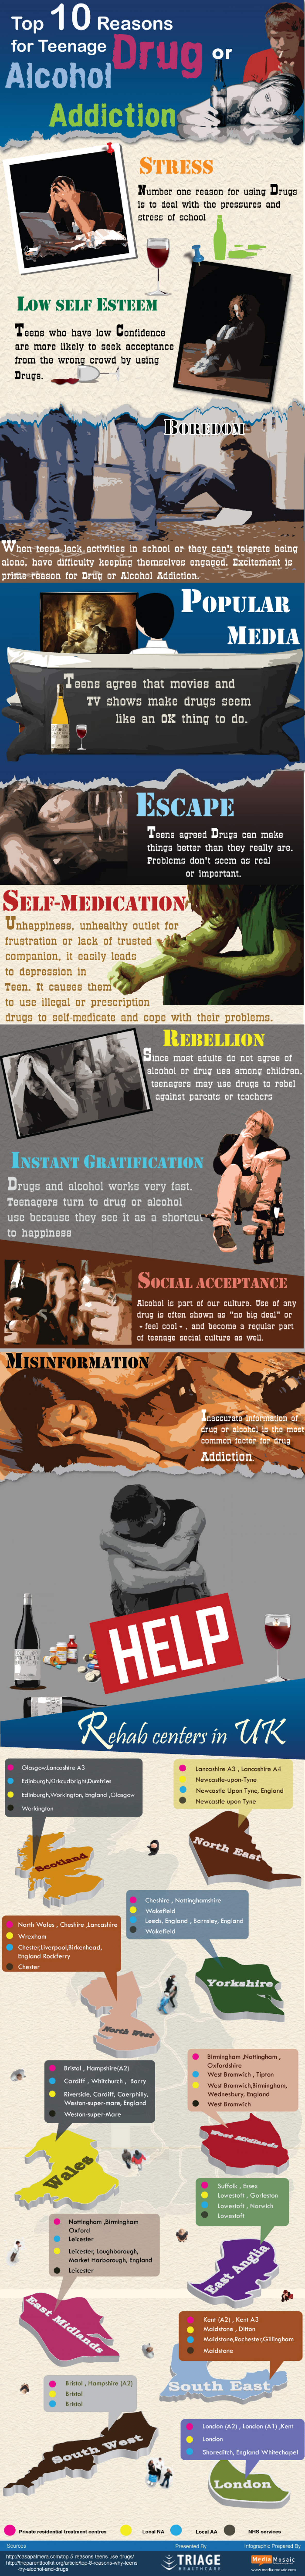 Teenage Drug Addiction and Rehab Centers UK Infographic